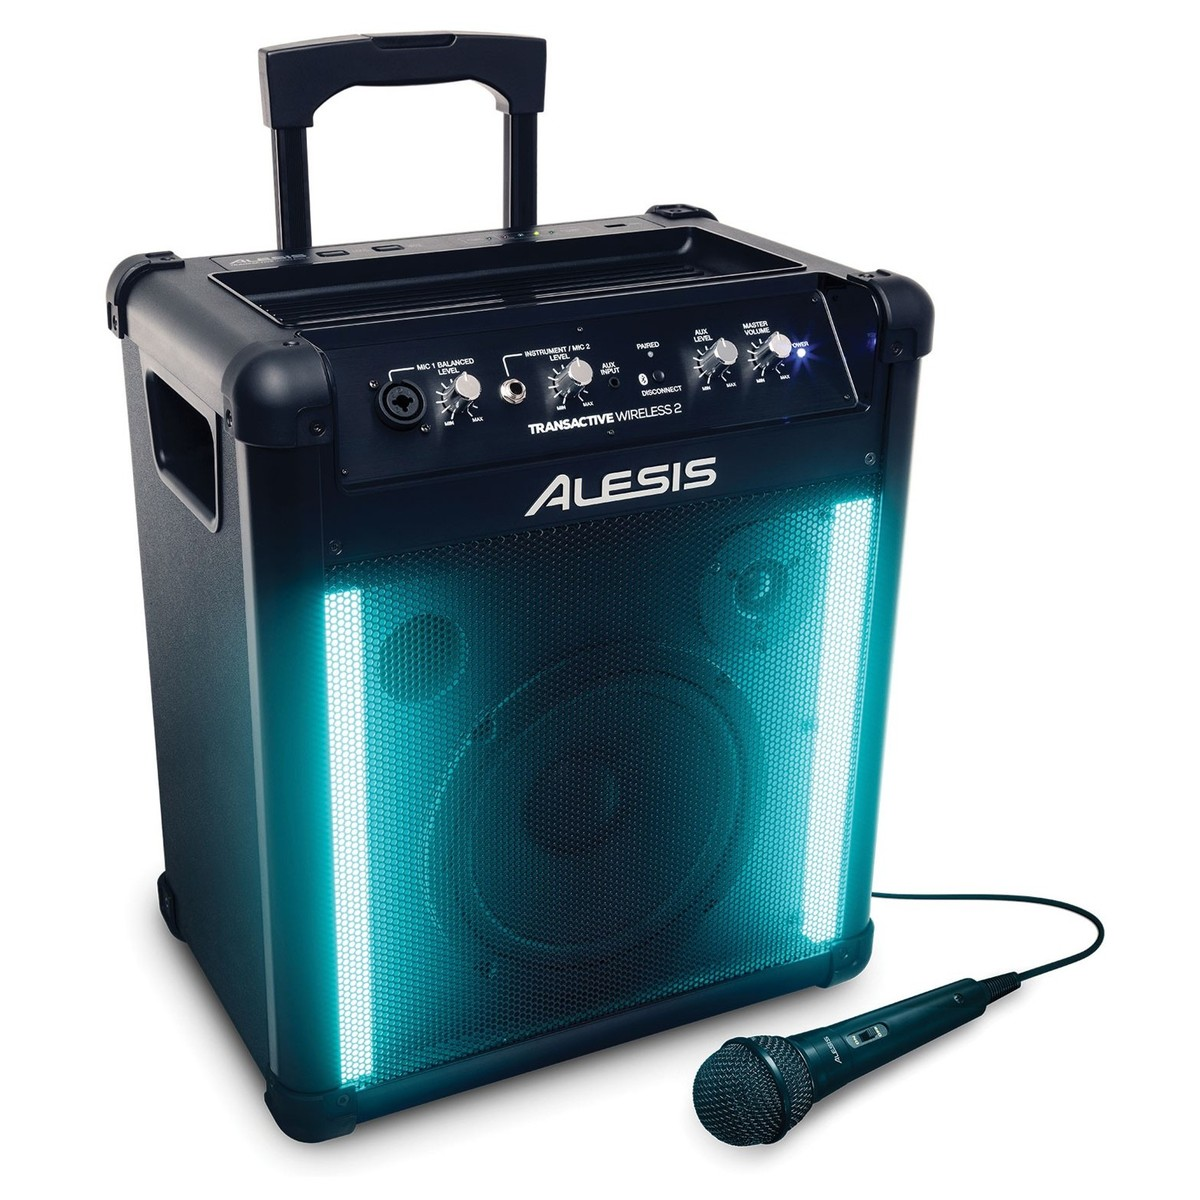 Alesis TransActive Wireless 2 Portable PA System at Gear4music e96c5e2516aaa